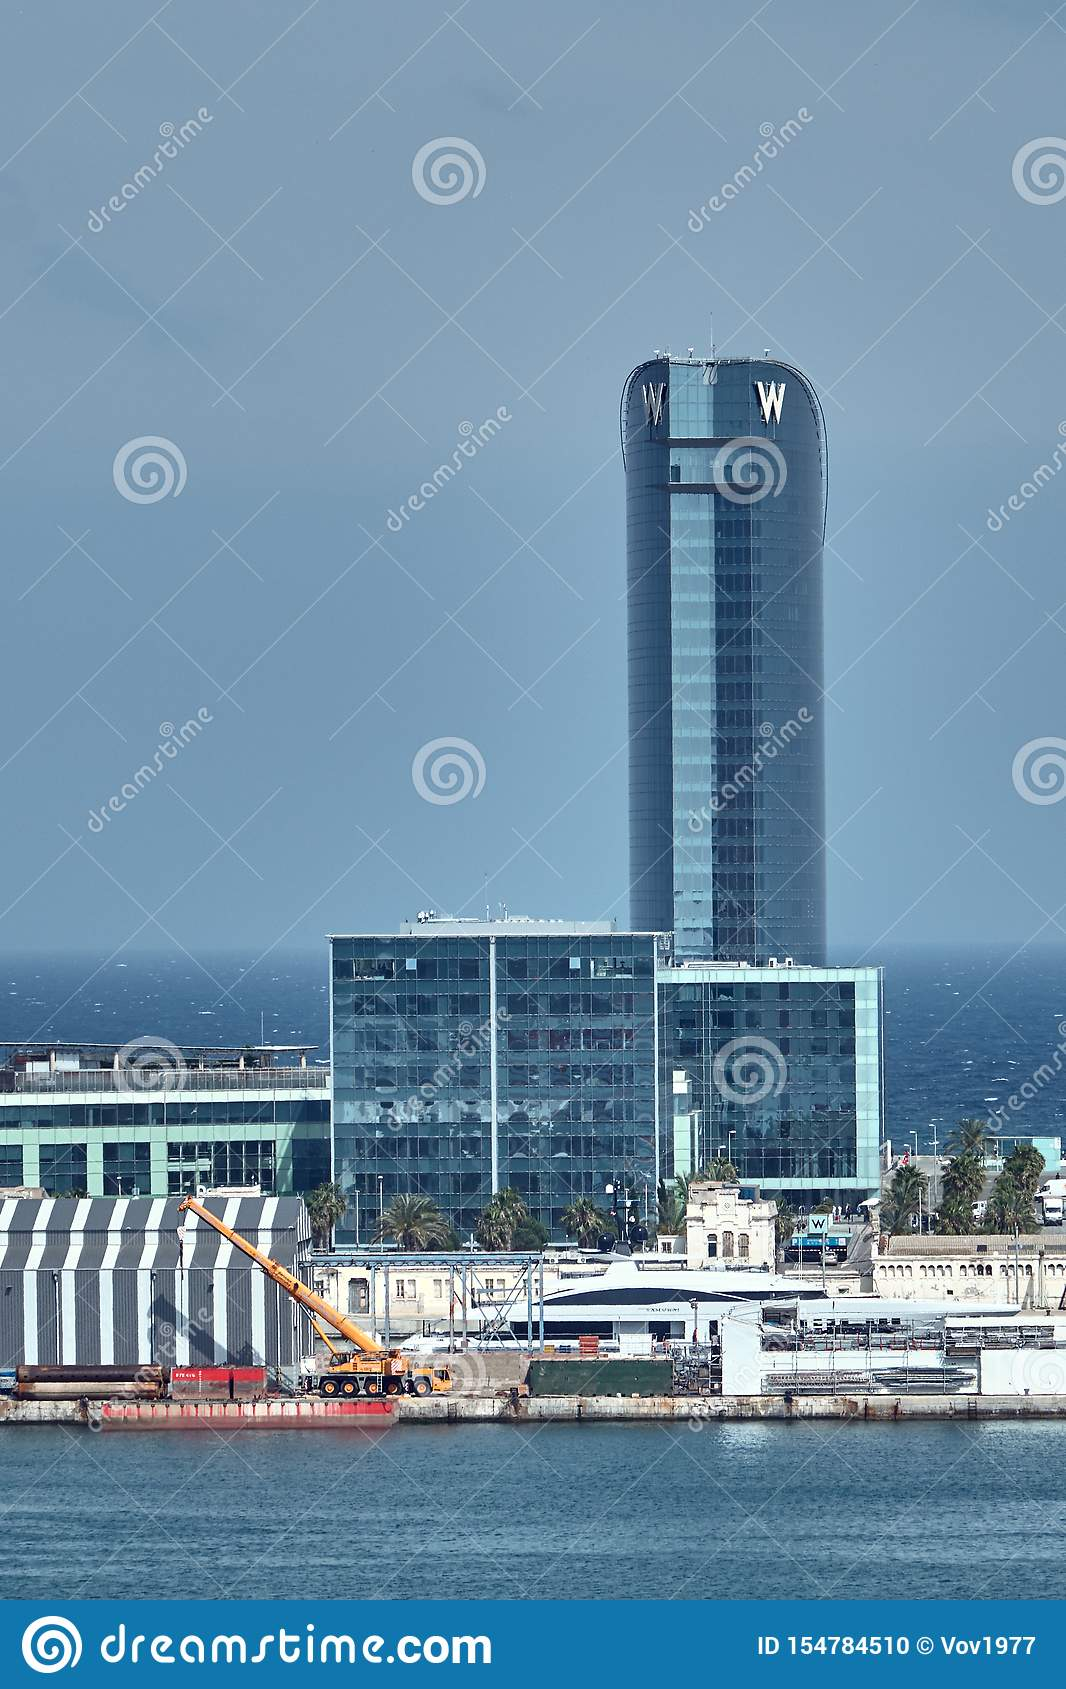 Barcelona, Spain - May, 27 2018: W Barcelona Hotel, known as the Hotel Vela Sail Hotel designed by Ricardo Bofill located in the